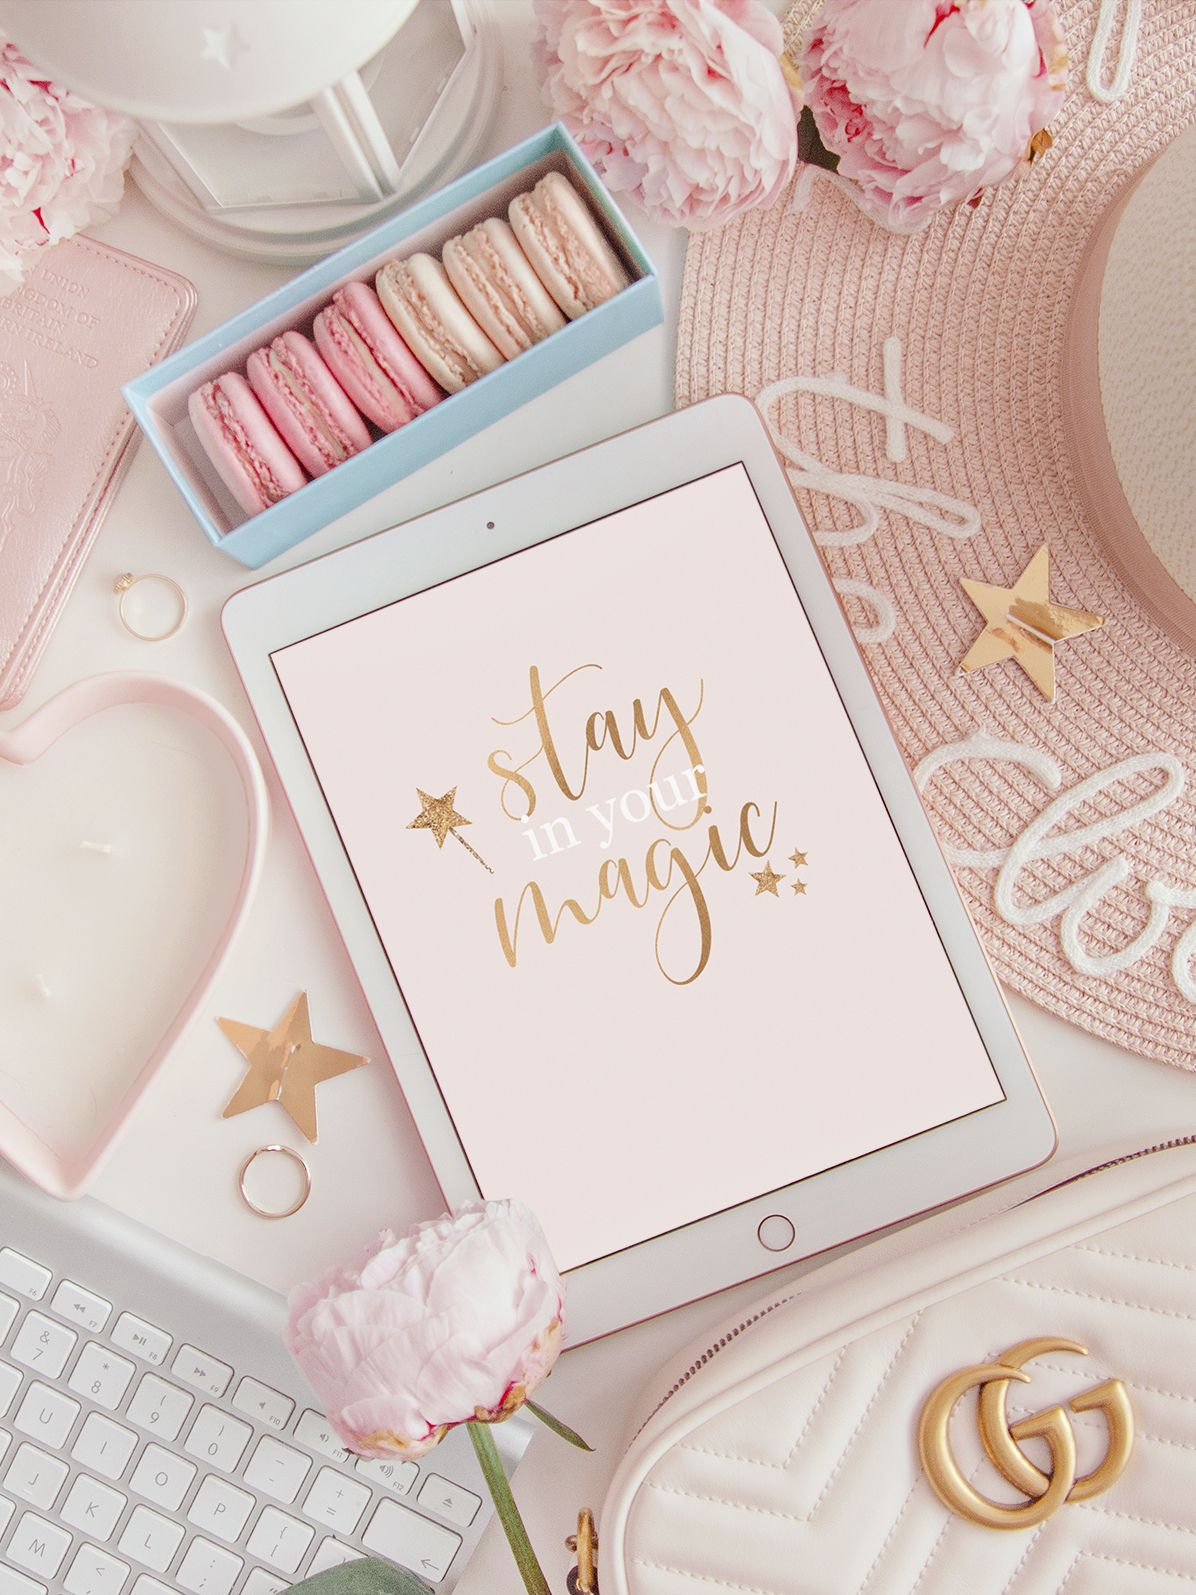 Flatlay Image Of An Ipad With The Quote Stay In Your Magic Pastel Pink Aesthetic Pink Wallpaper Iphone Pink Girly Things